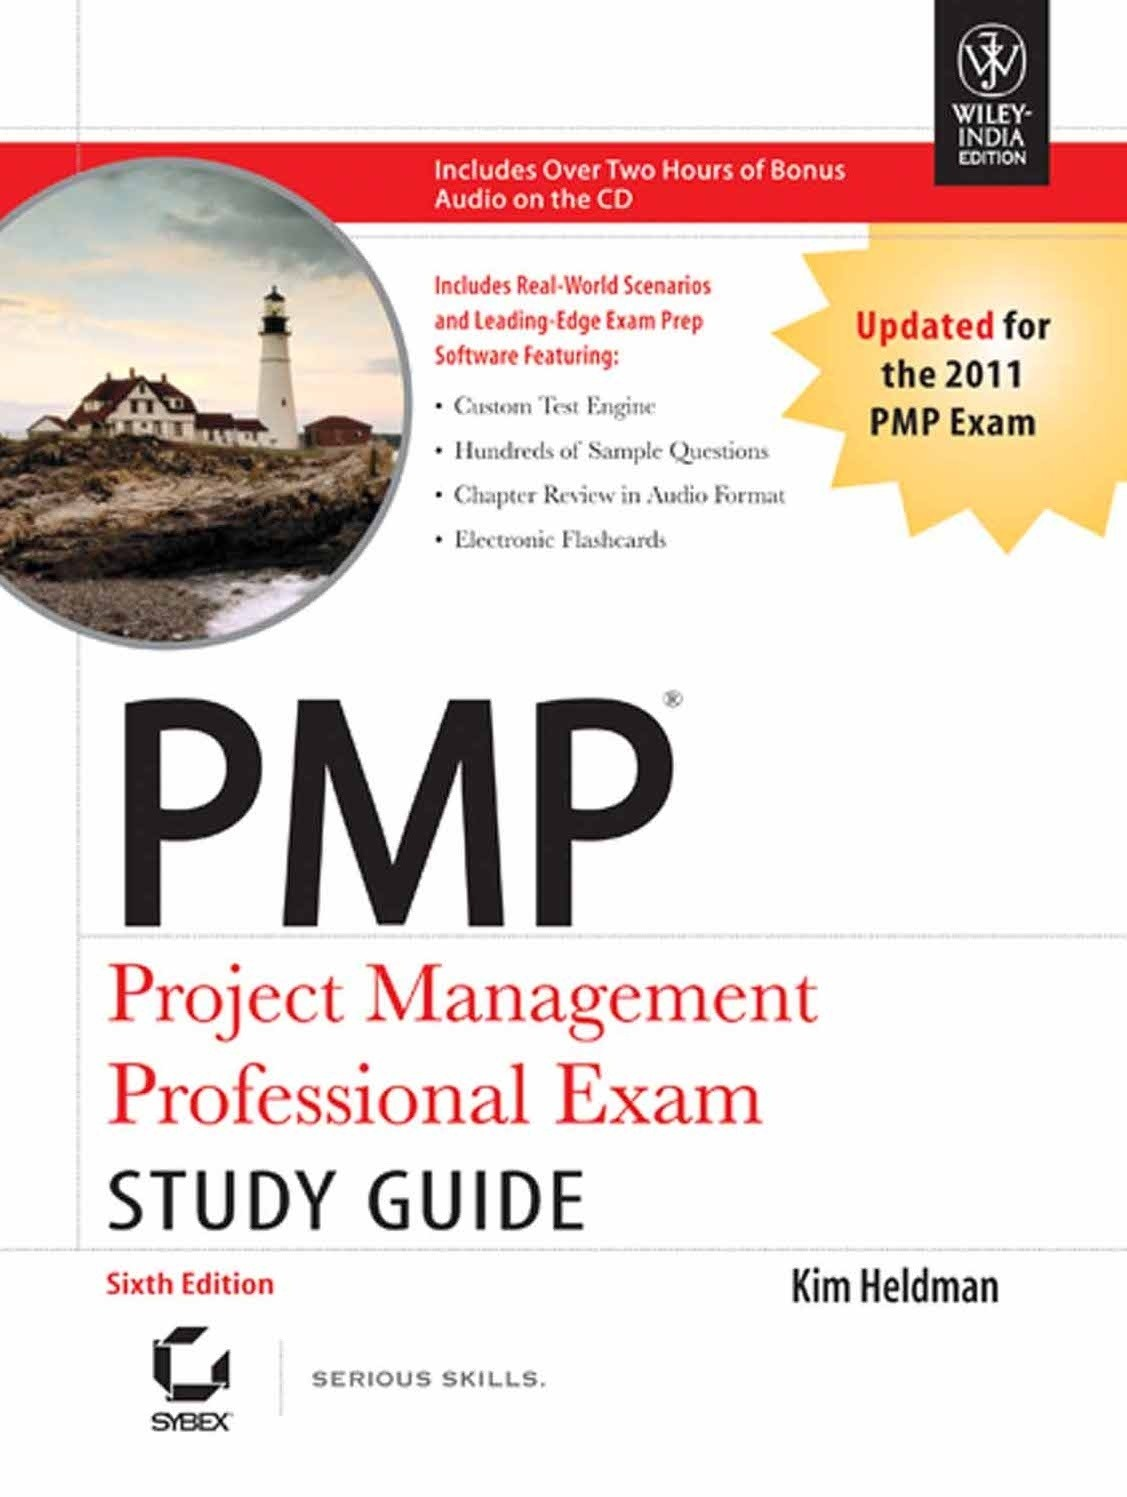 mgmt 4800 exam 3 study guide Vol 77 no 3 july 2002 pp 483-514 management's incentives to avoid  i also  examine whether firms manage earnings upward or guide analysts'  recent  academic studies find evidence consistent with managers taking actions to  i  test a number of hypotheses about managers' incentives to avoid negative  earnings.